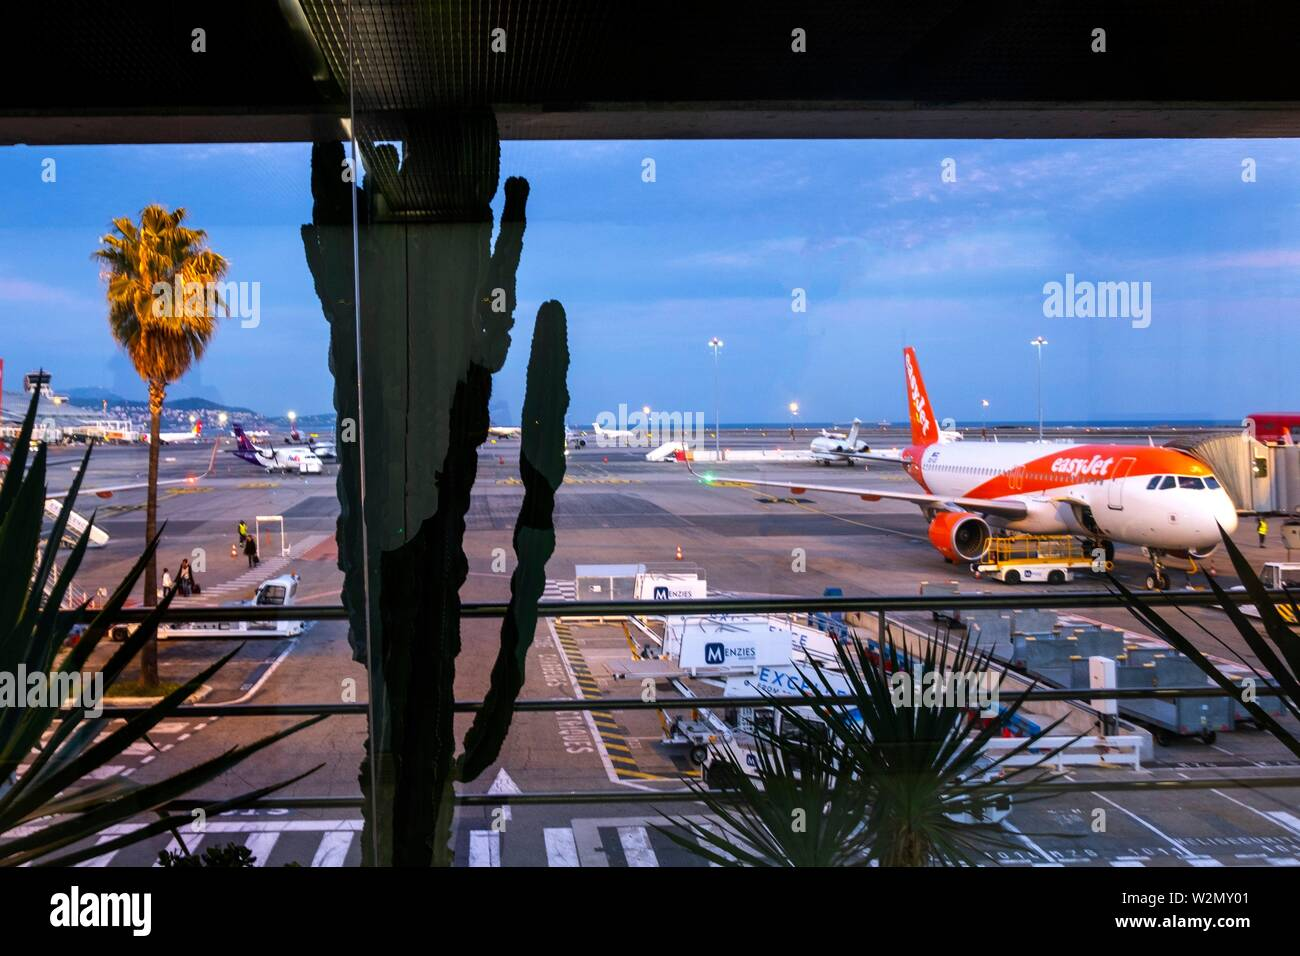 France, Paca, Alpes Maritimes, Nice Cote d´Azur airport. Stock Photo